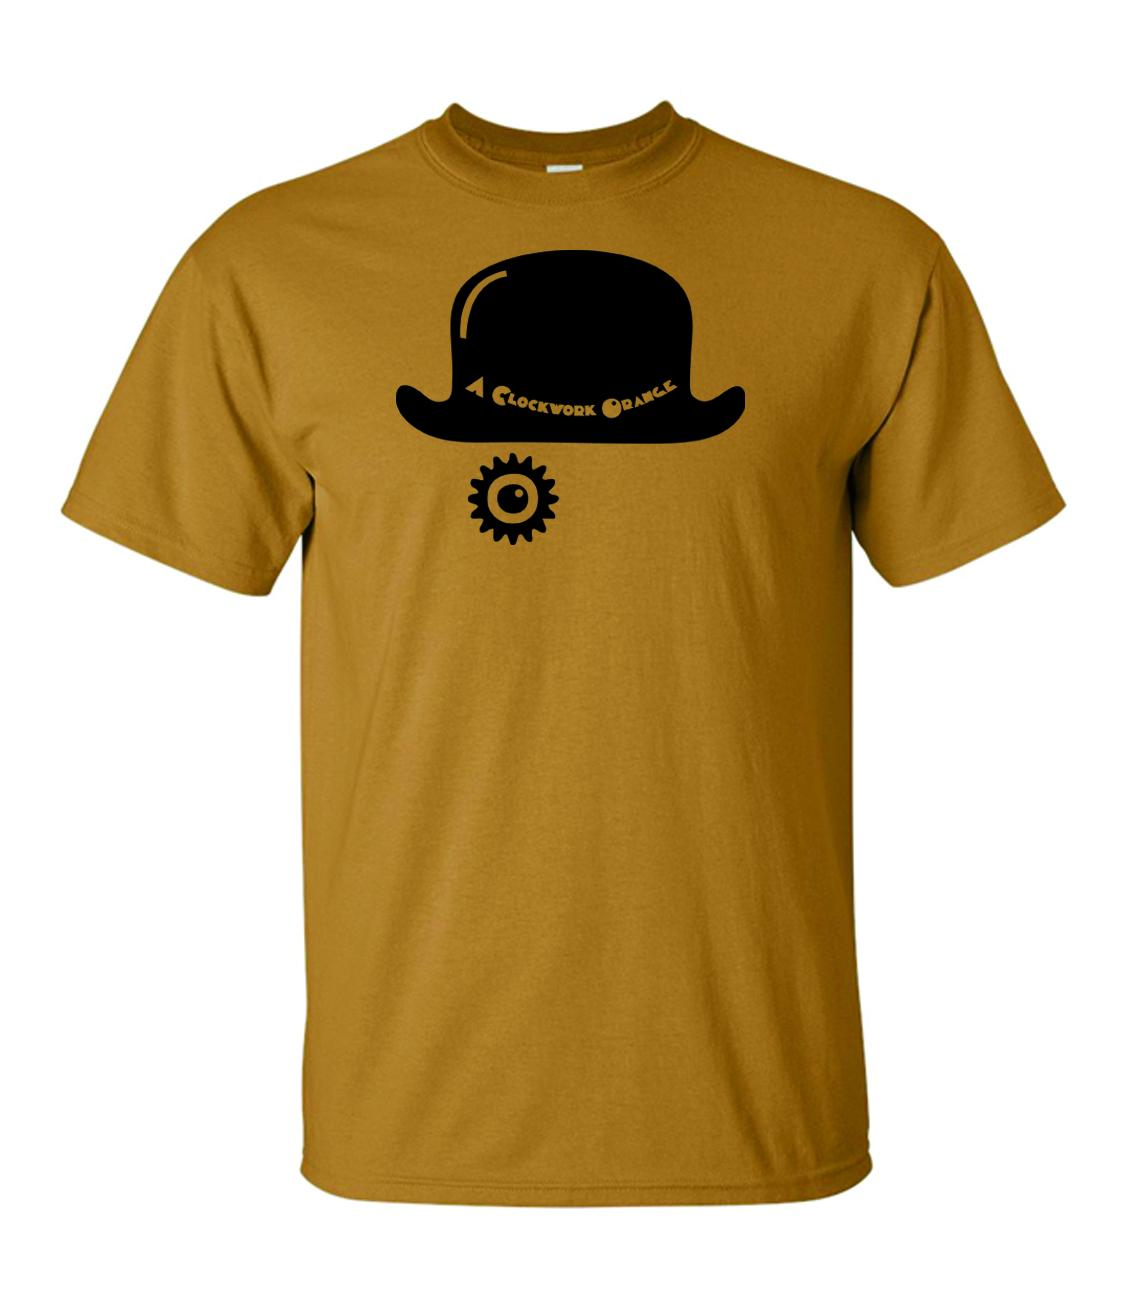 A Clockwork Orange Hat T-Shirt  c81e3b7fb5b